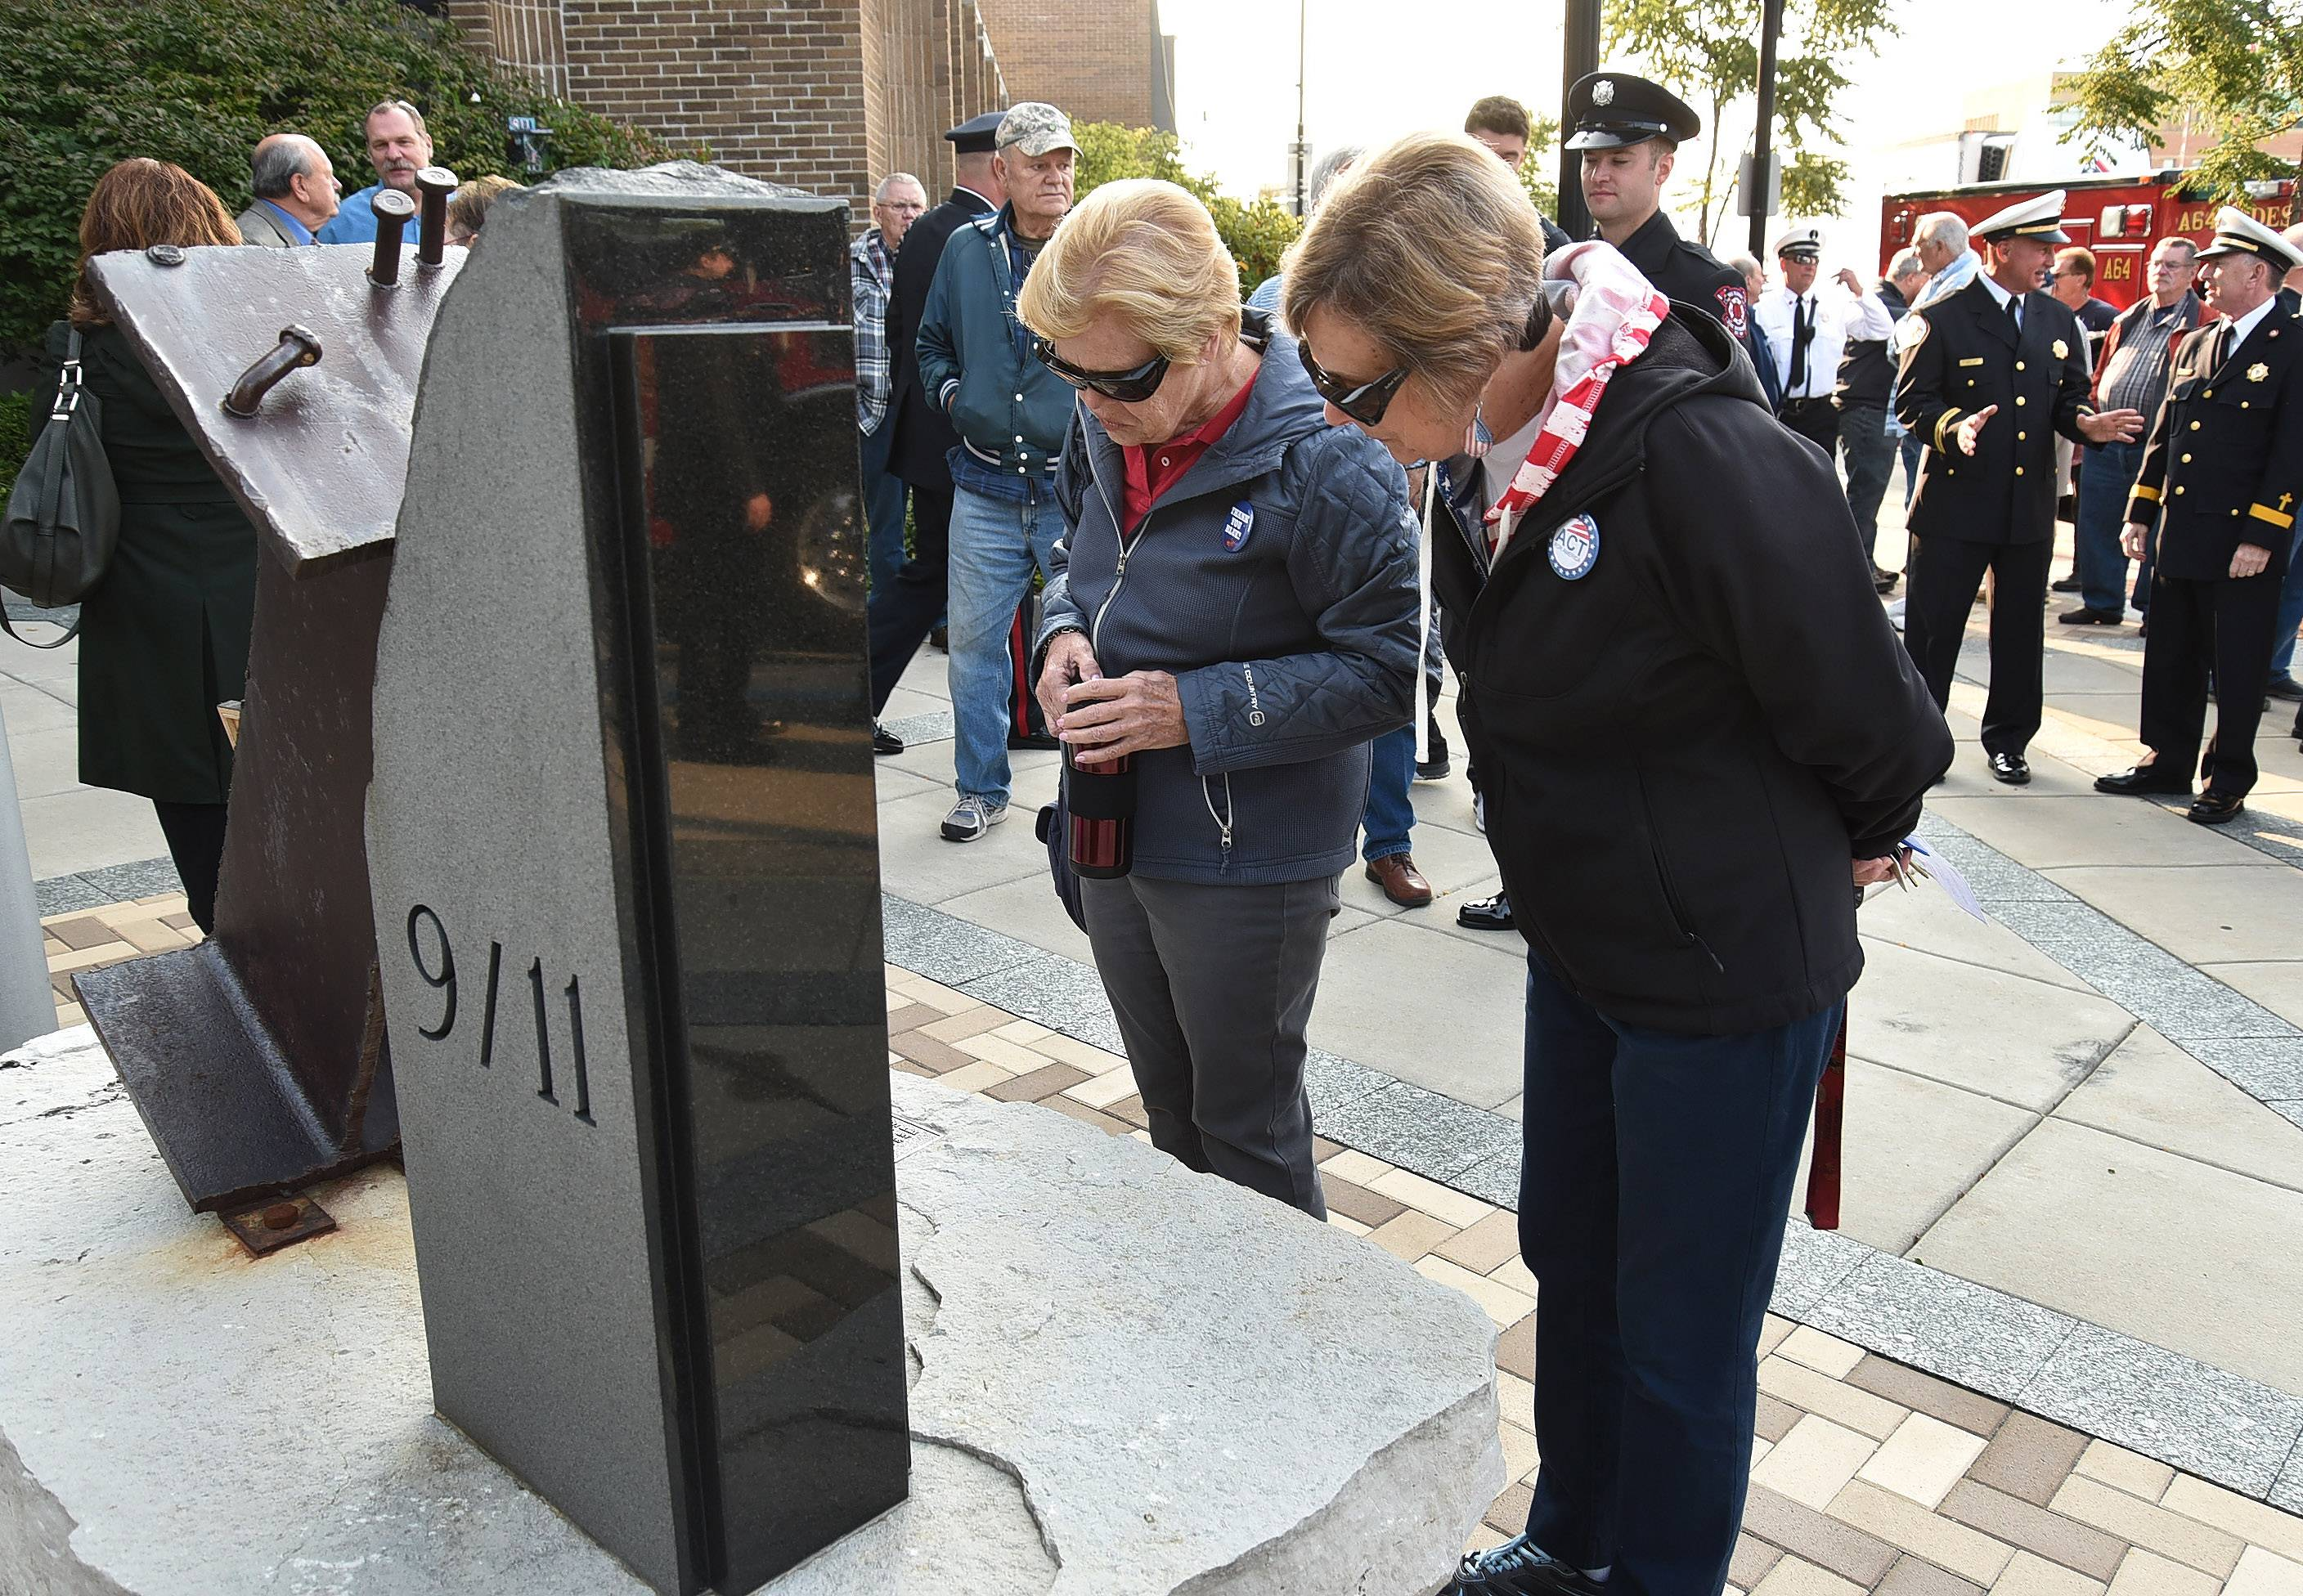 Residents, first responders honor 9/11 victims in ceremonies across suburbs